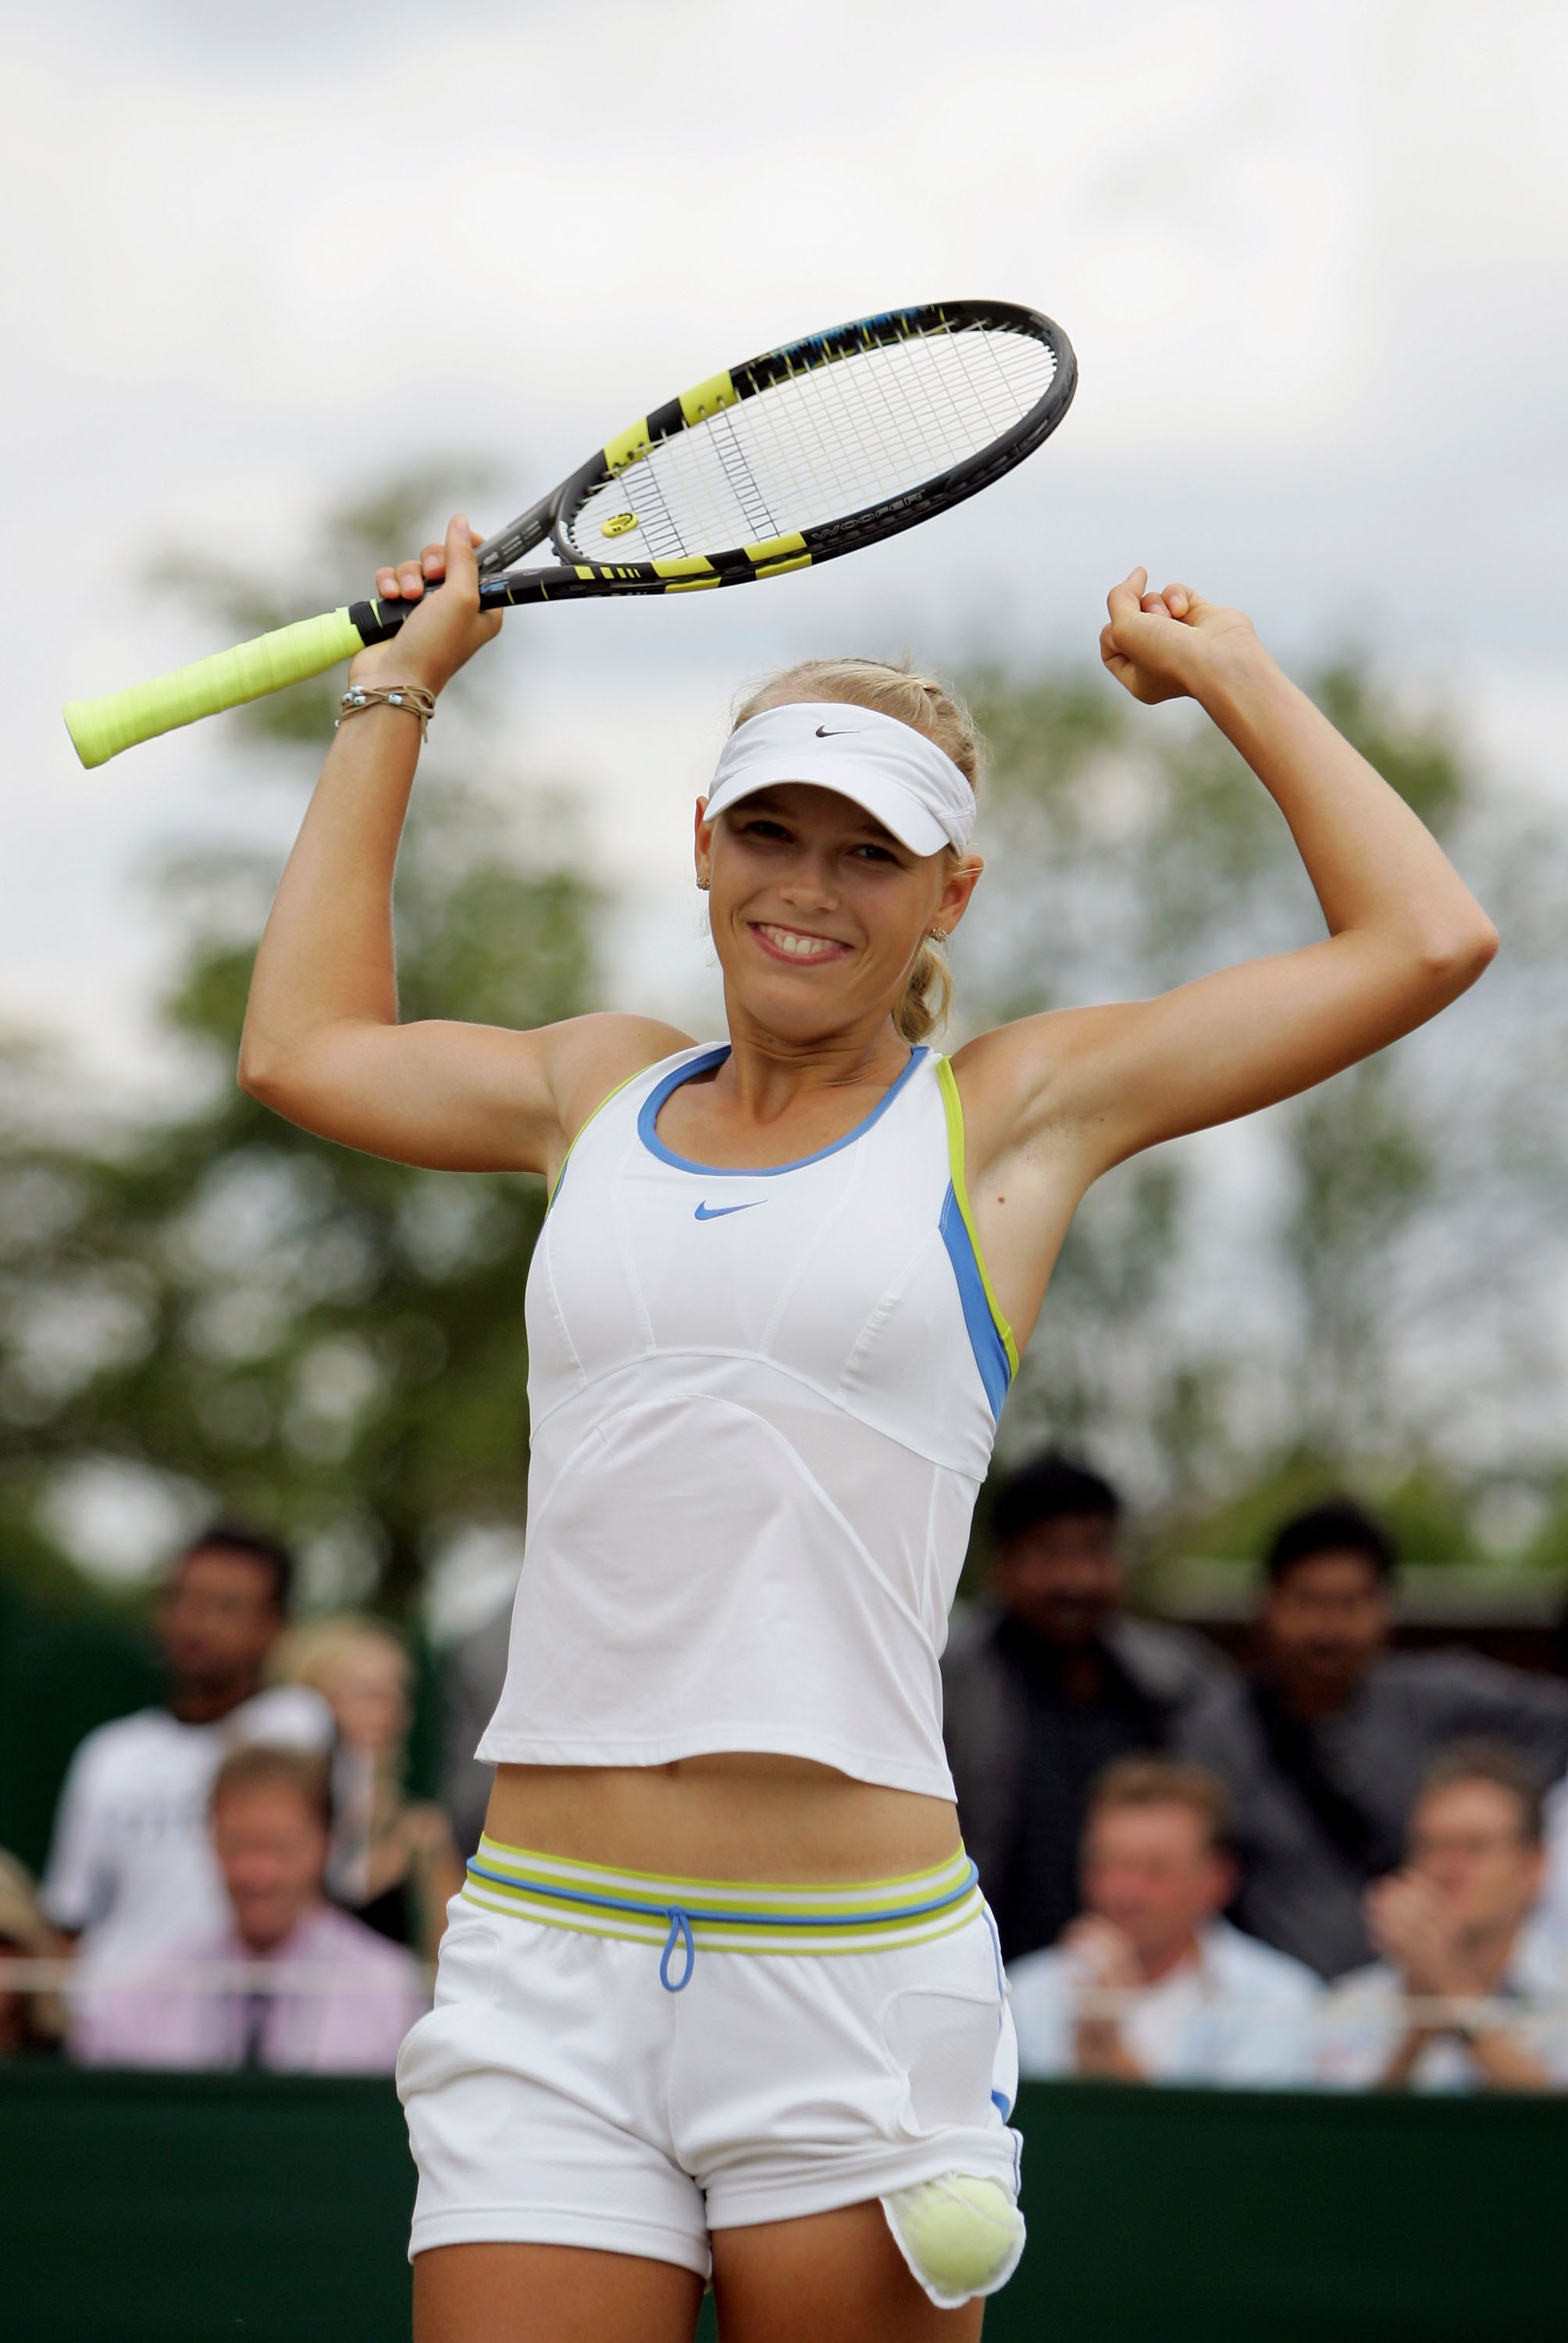 Wozniacki wasn't always with Adidas. She won her junior Wimbledon title (defeating Magdalena Rybarikova) in Nike.